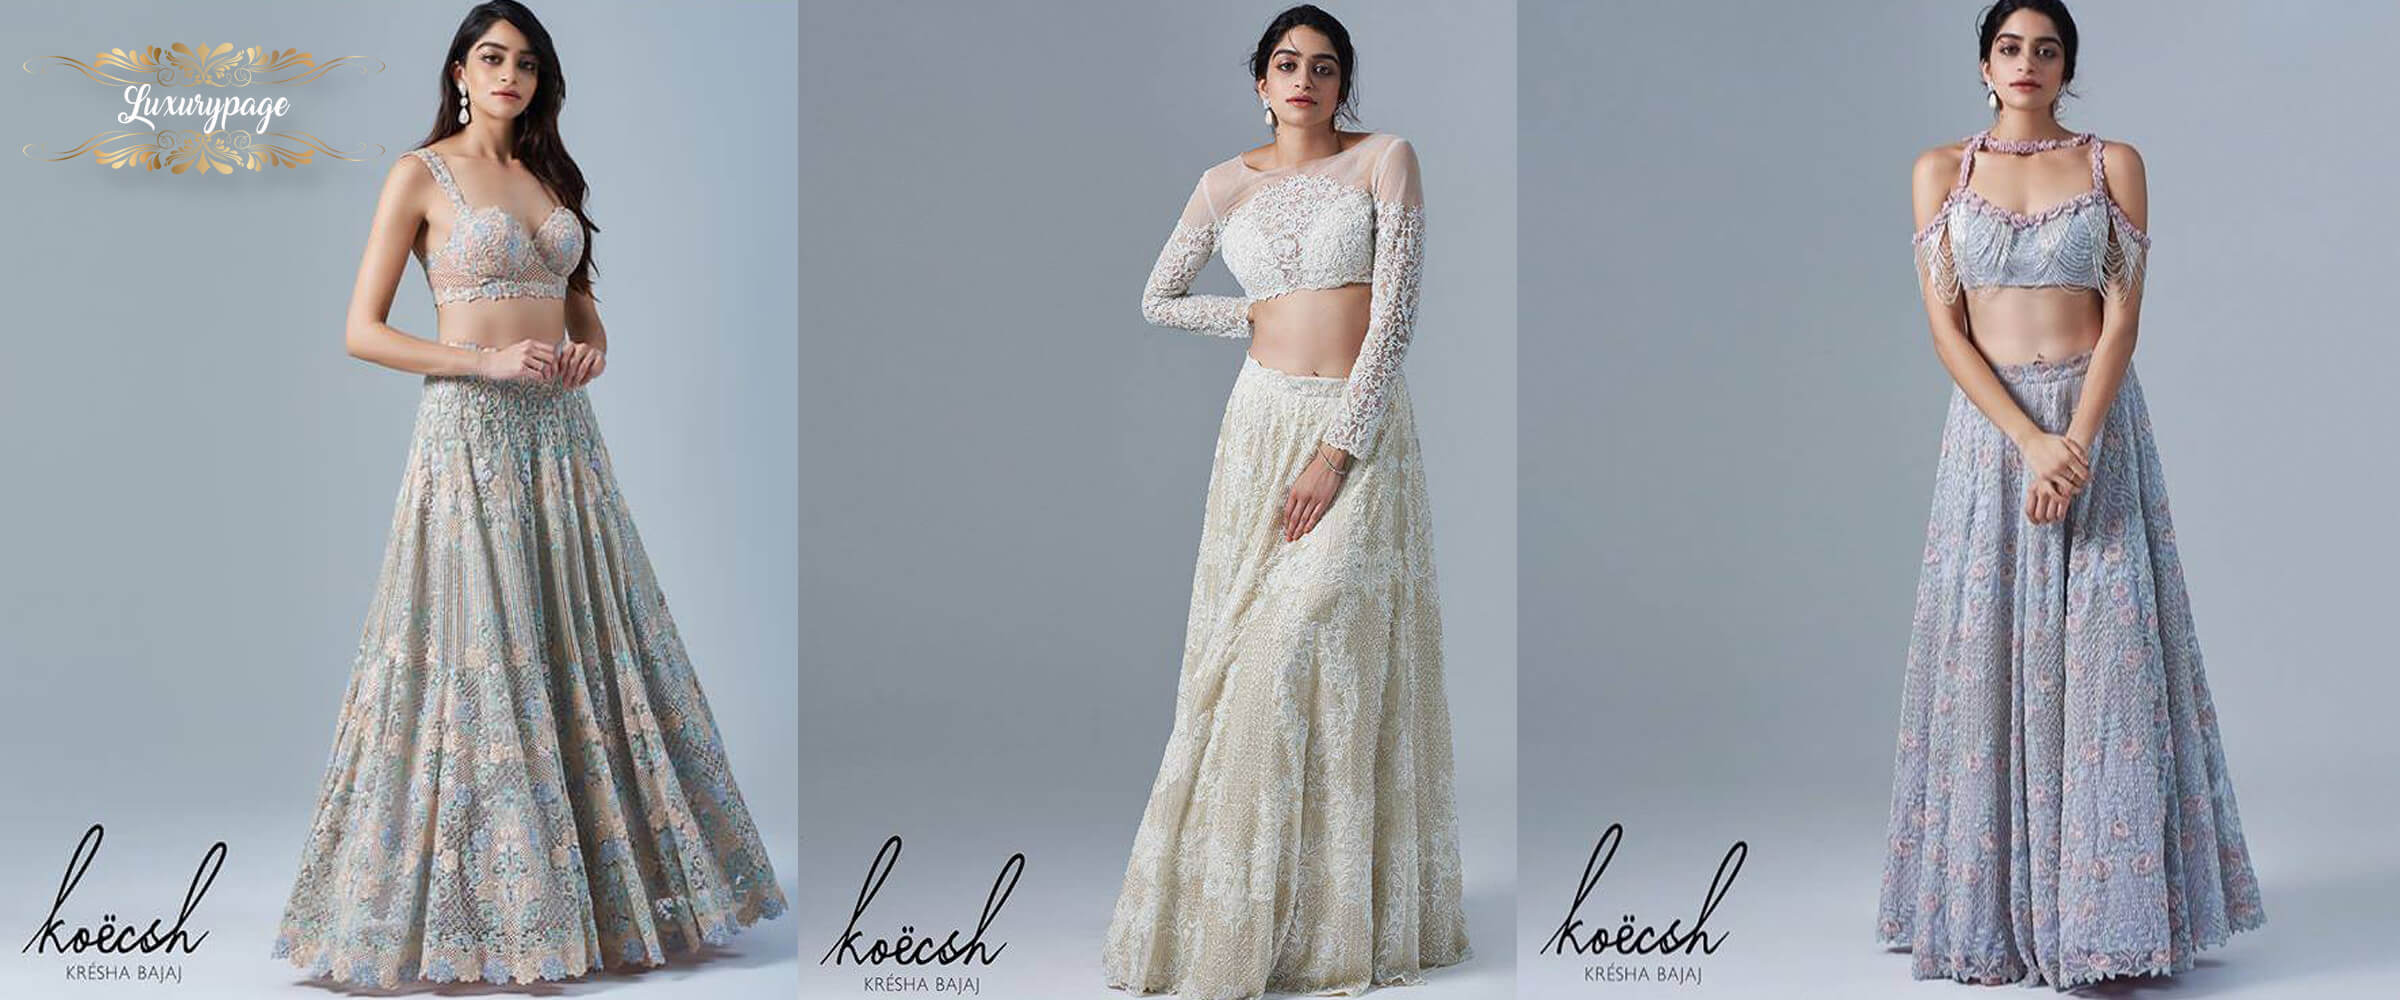 Kresha Bajaj's Newly Launched Bridal Boutique